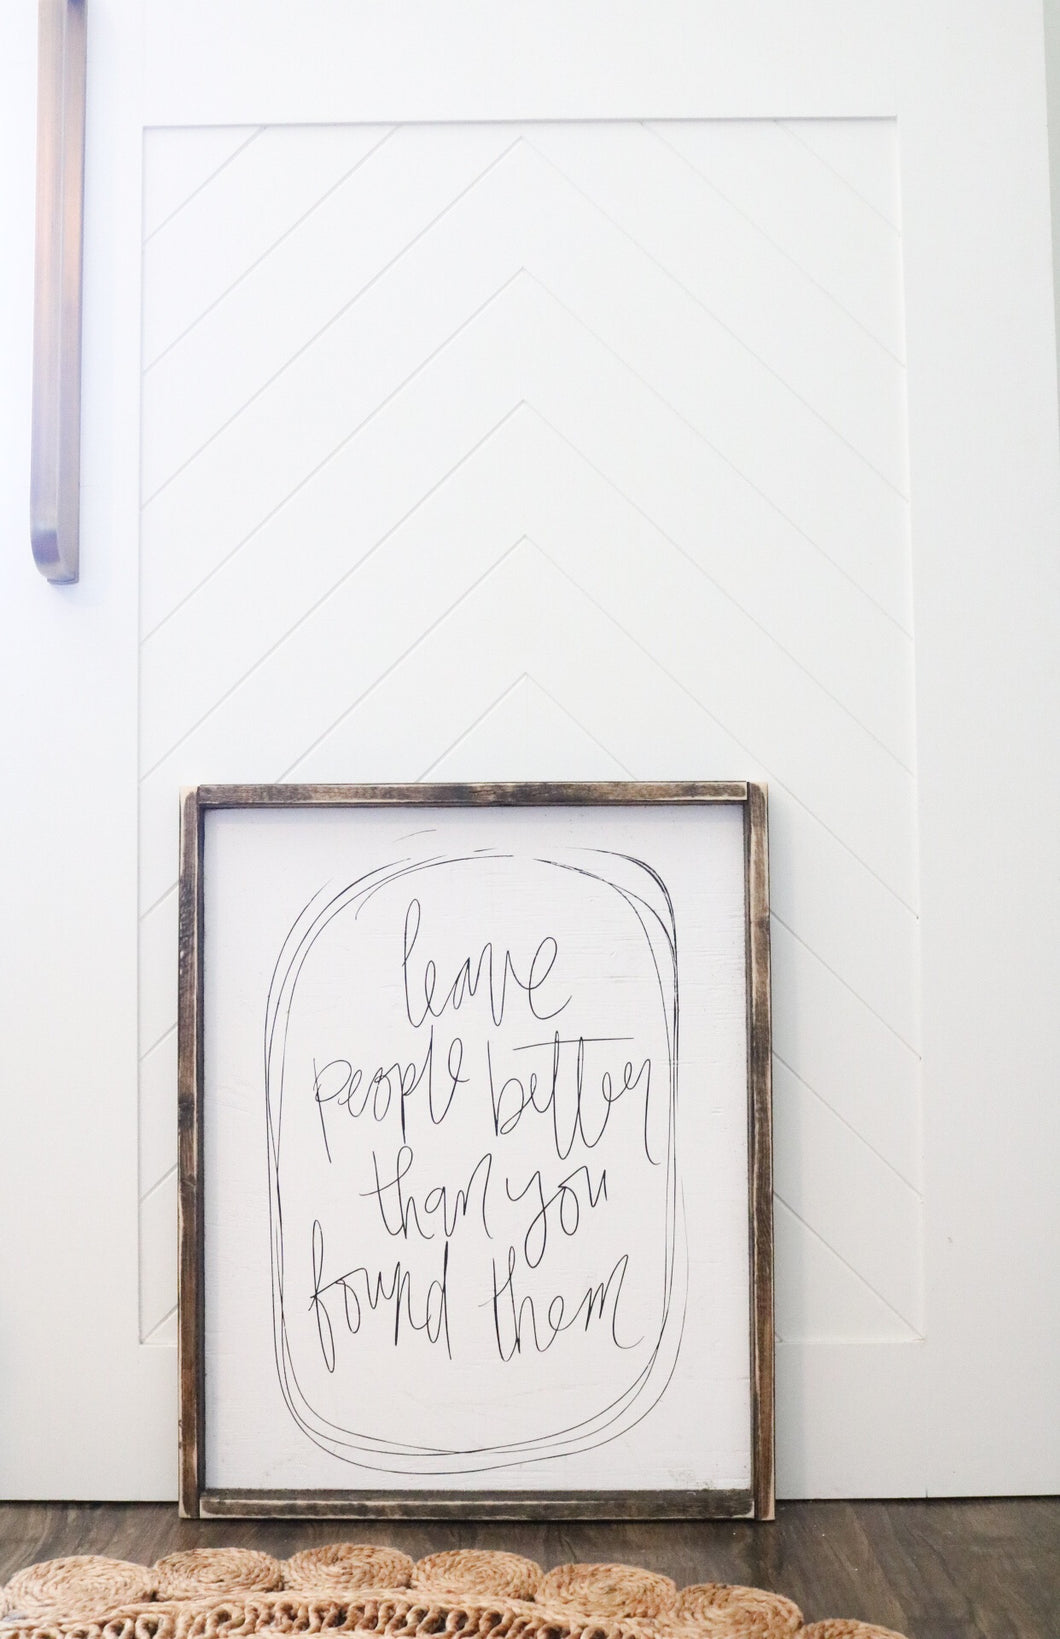 Leave People Better Than You Found Them - Wood Sign